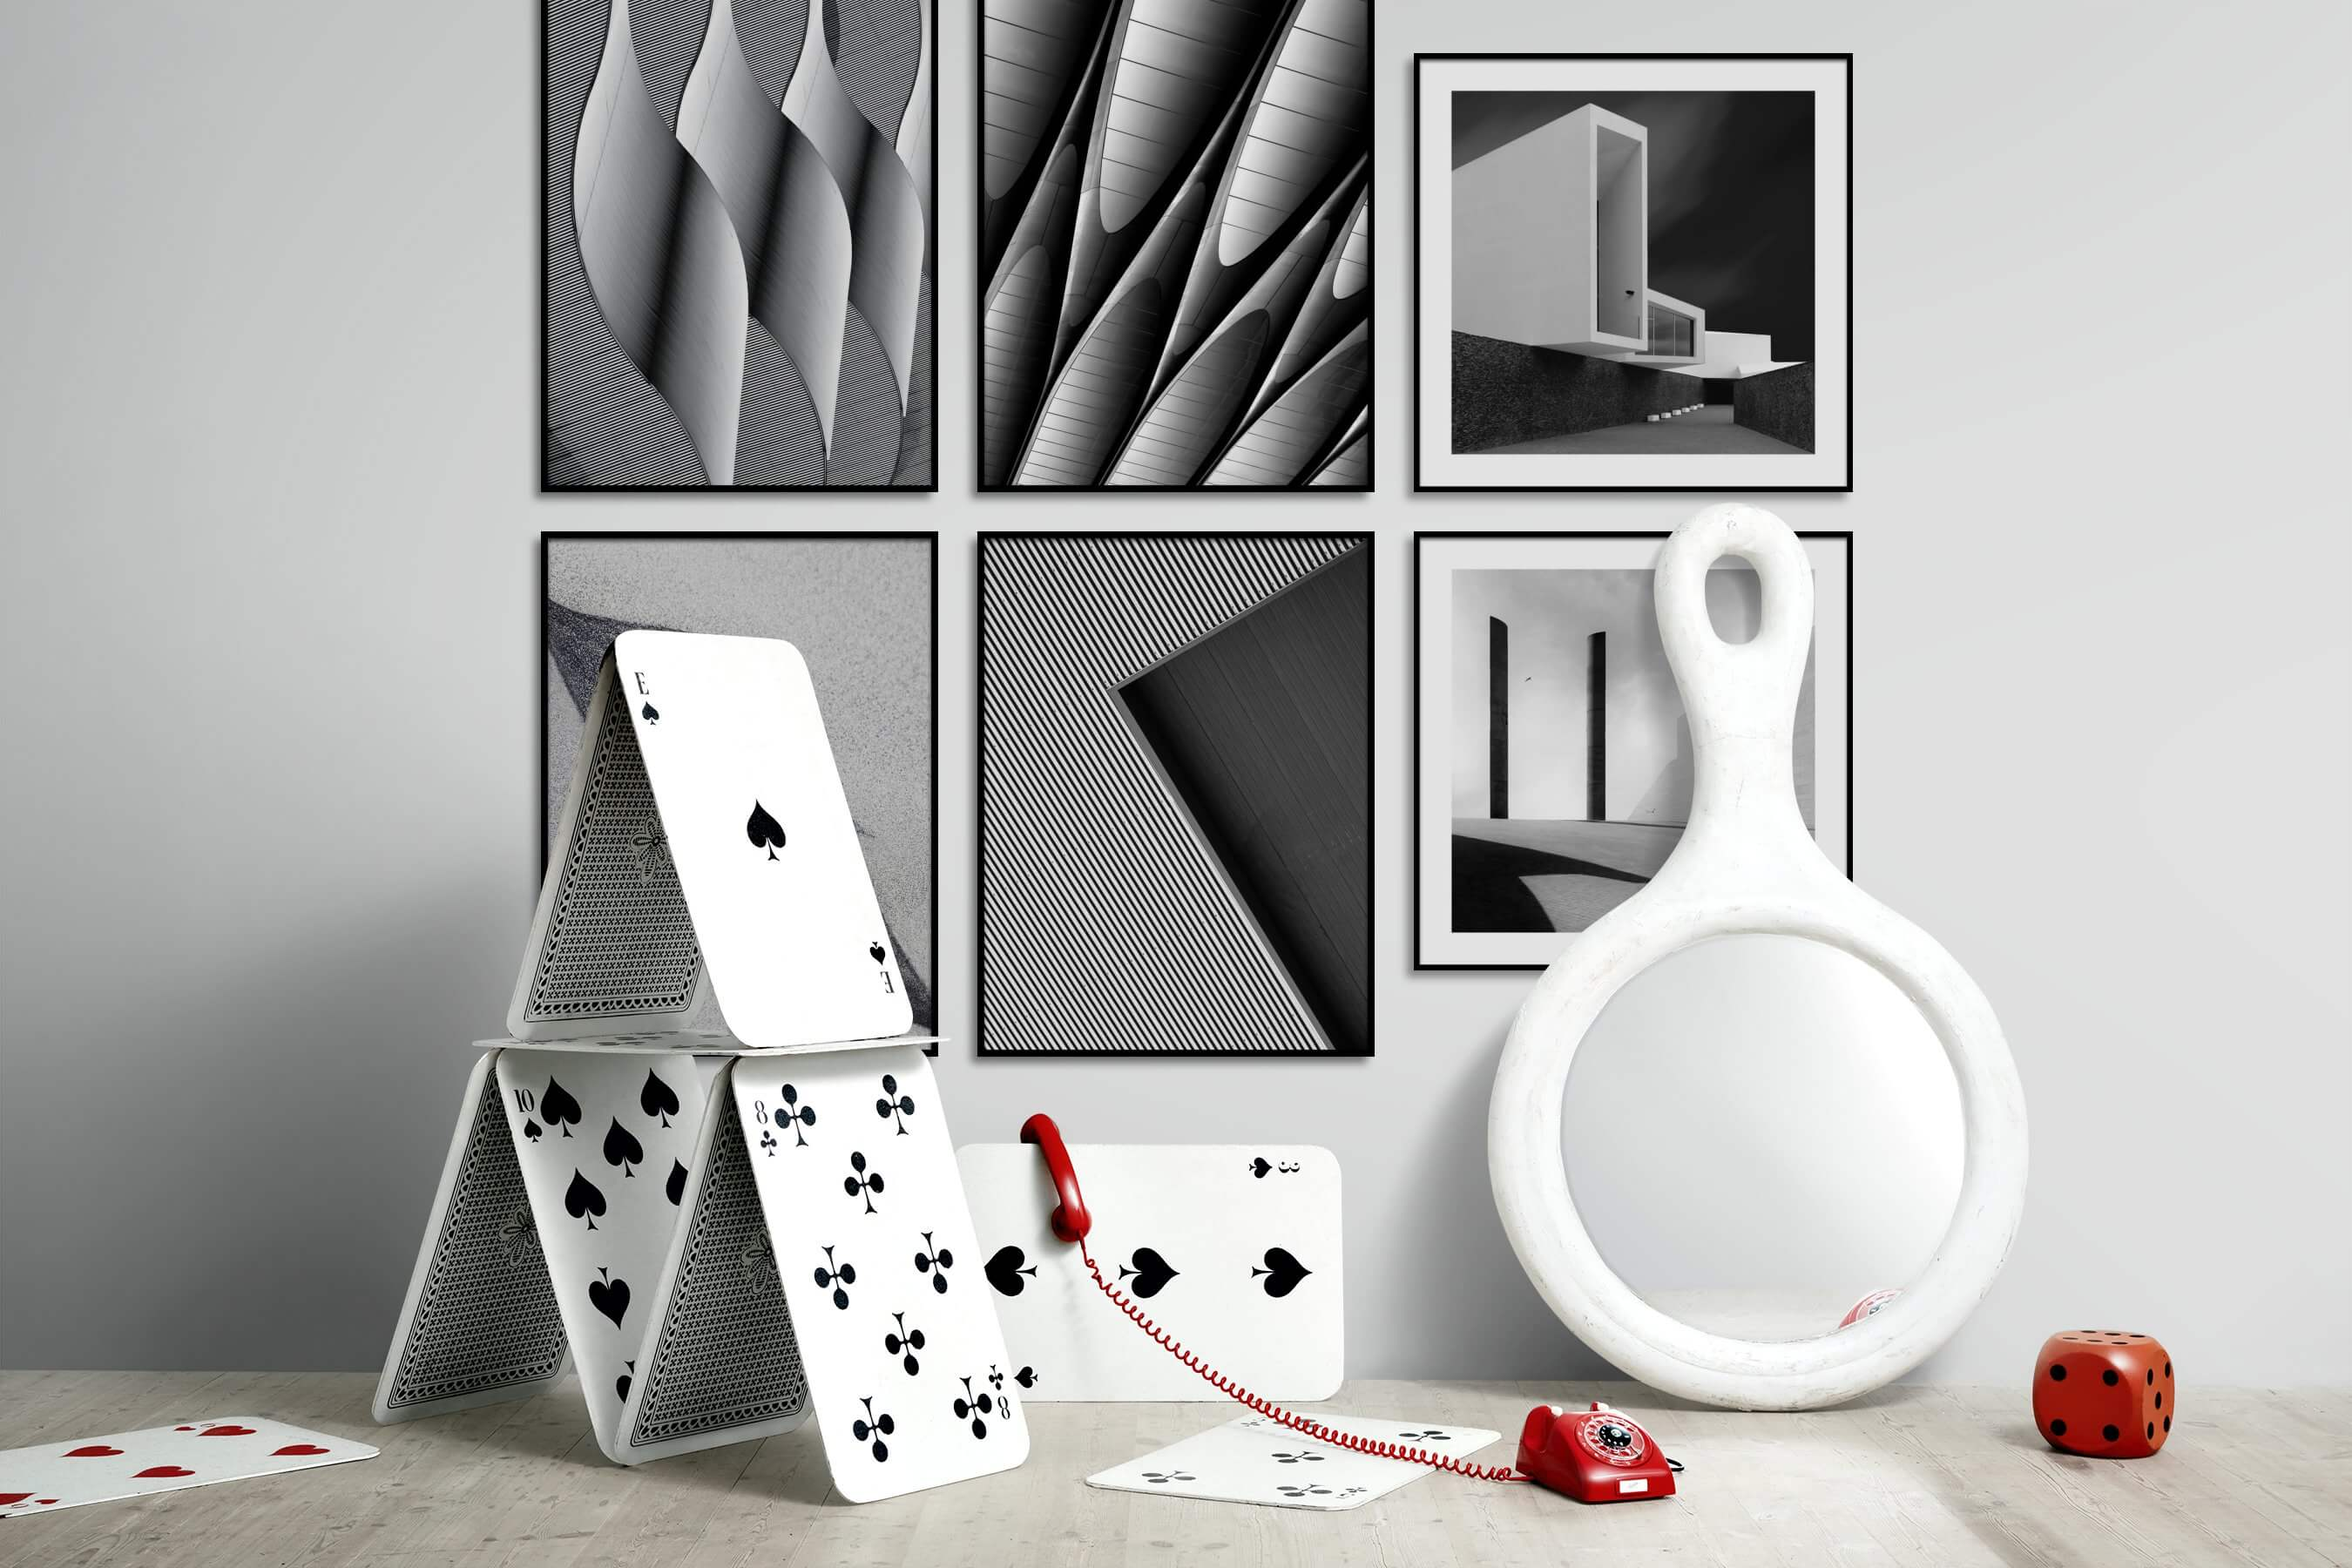 Gallery wall idea with six framed pictures arranged on a wall depicting Black & White, For the Maximalist, and For the Minimalist